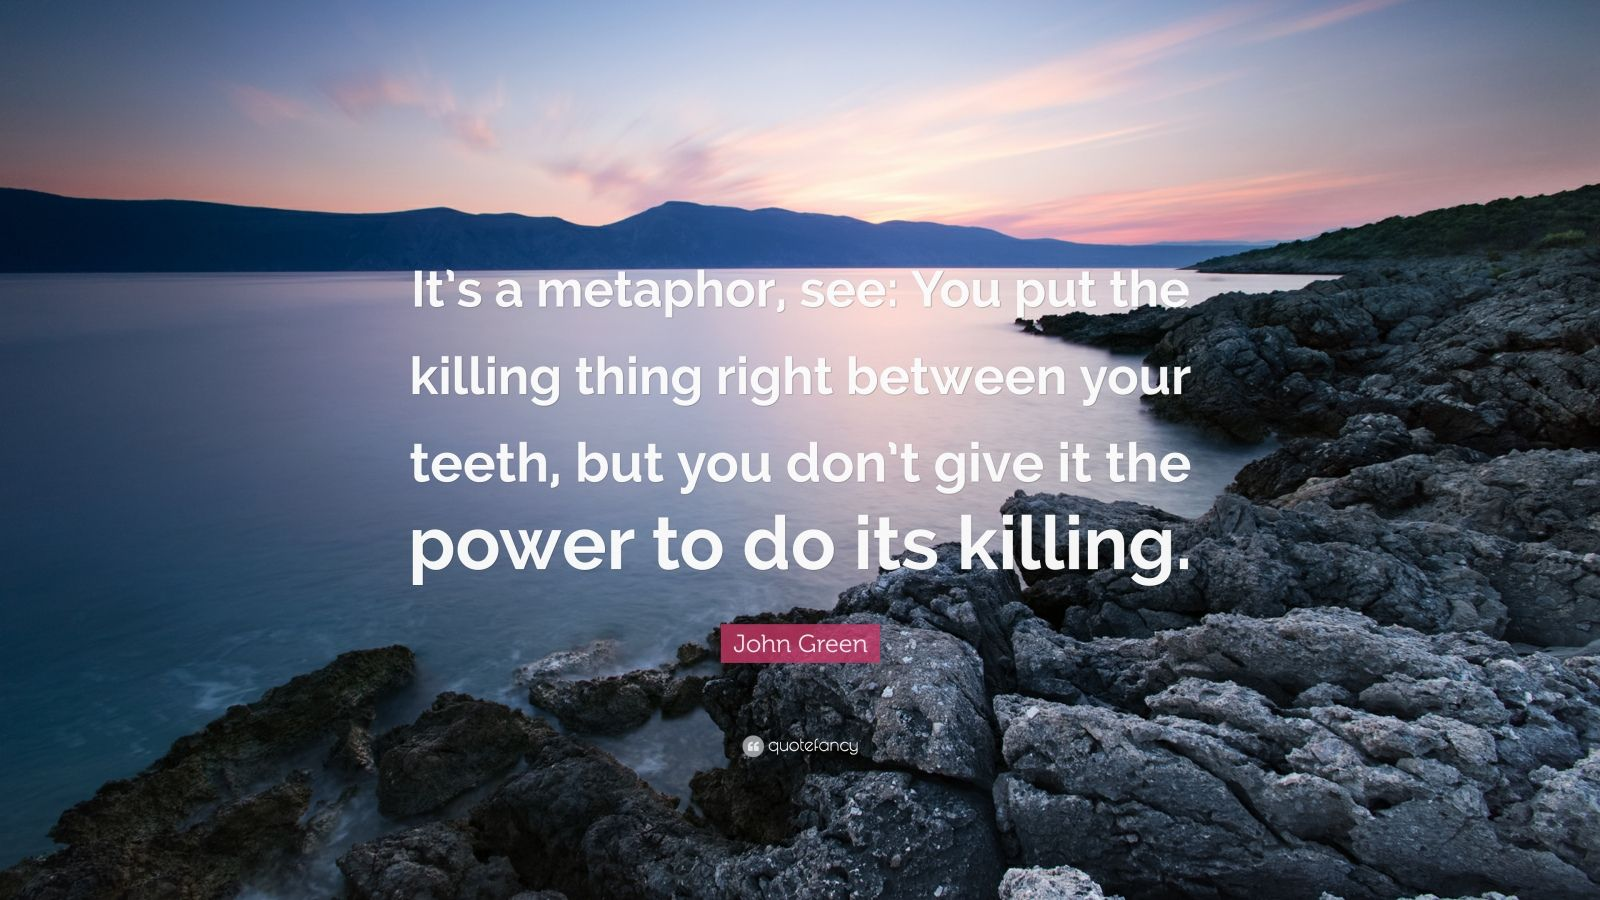 """John Green Quote: """"It's a metaphor, see: You put the killing thing right between your teeth, but you don't give it the power to do its killing."""""""